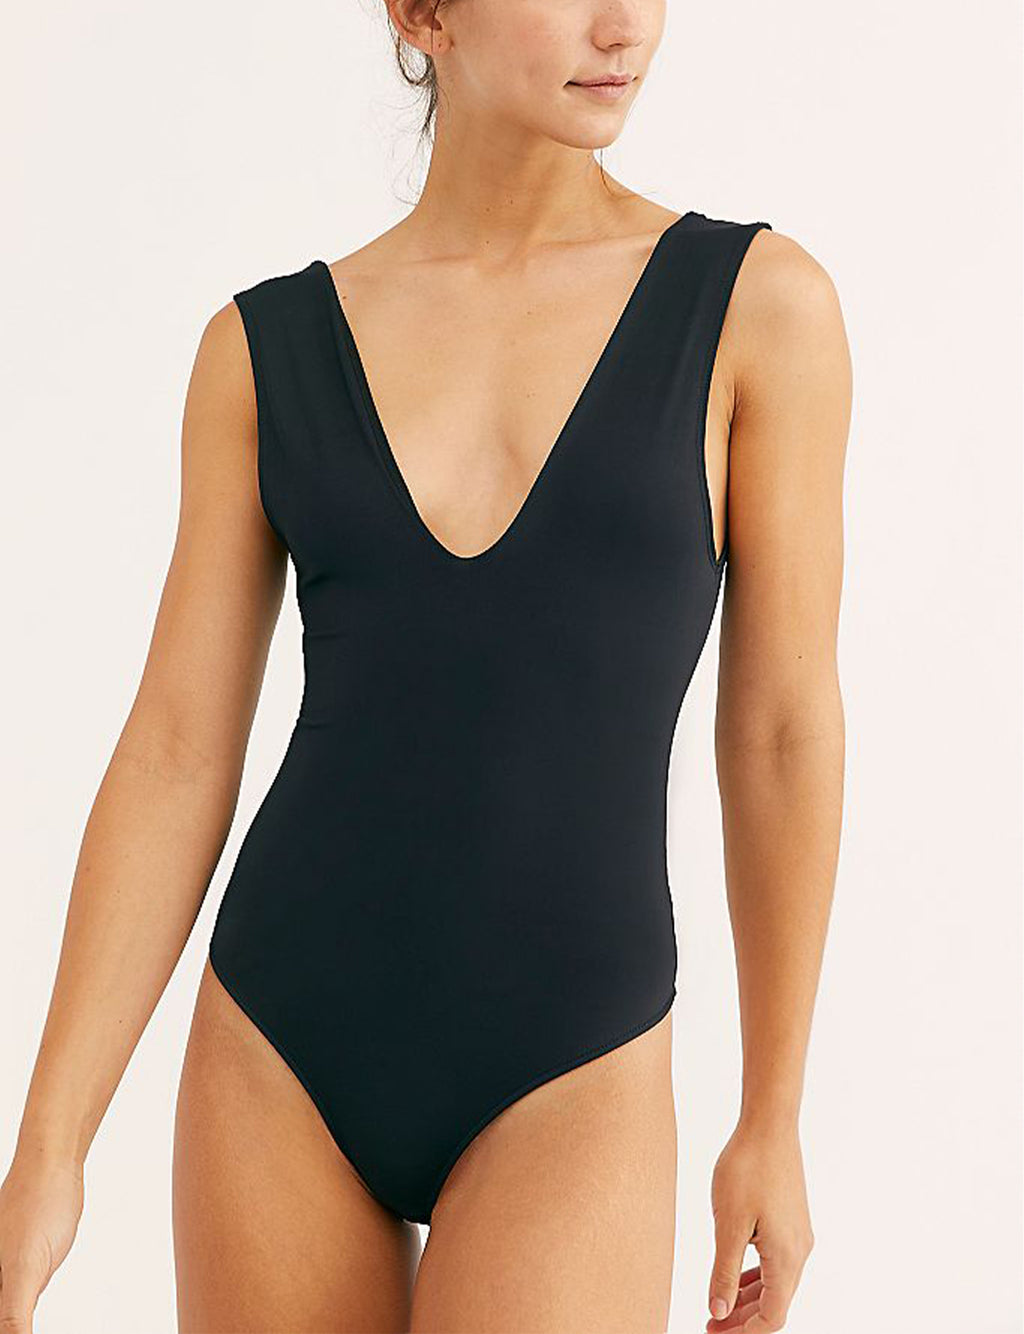 Free People Keep It Sleek Bodysuit in Black